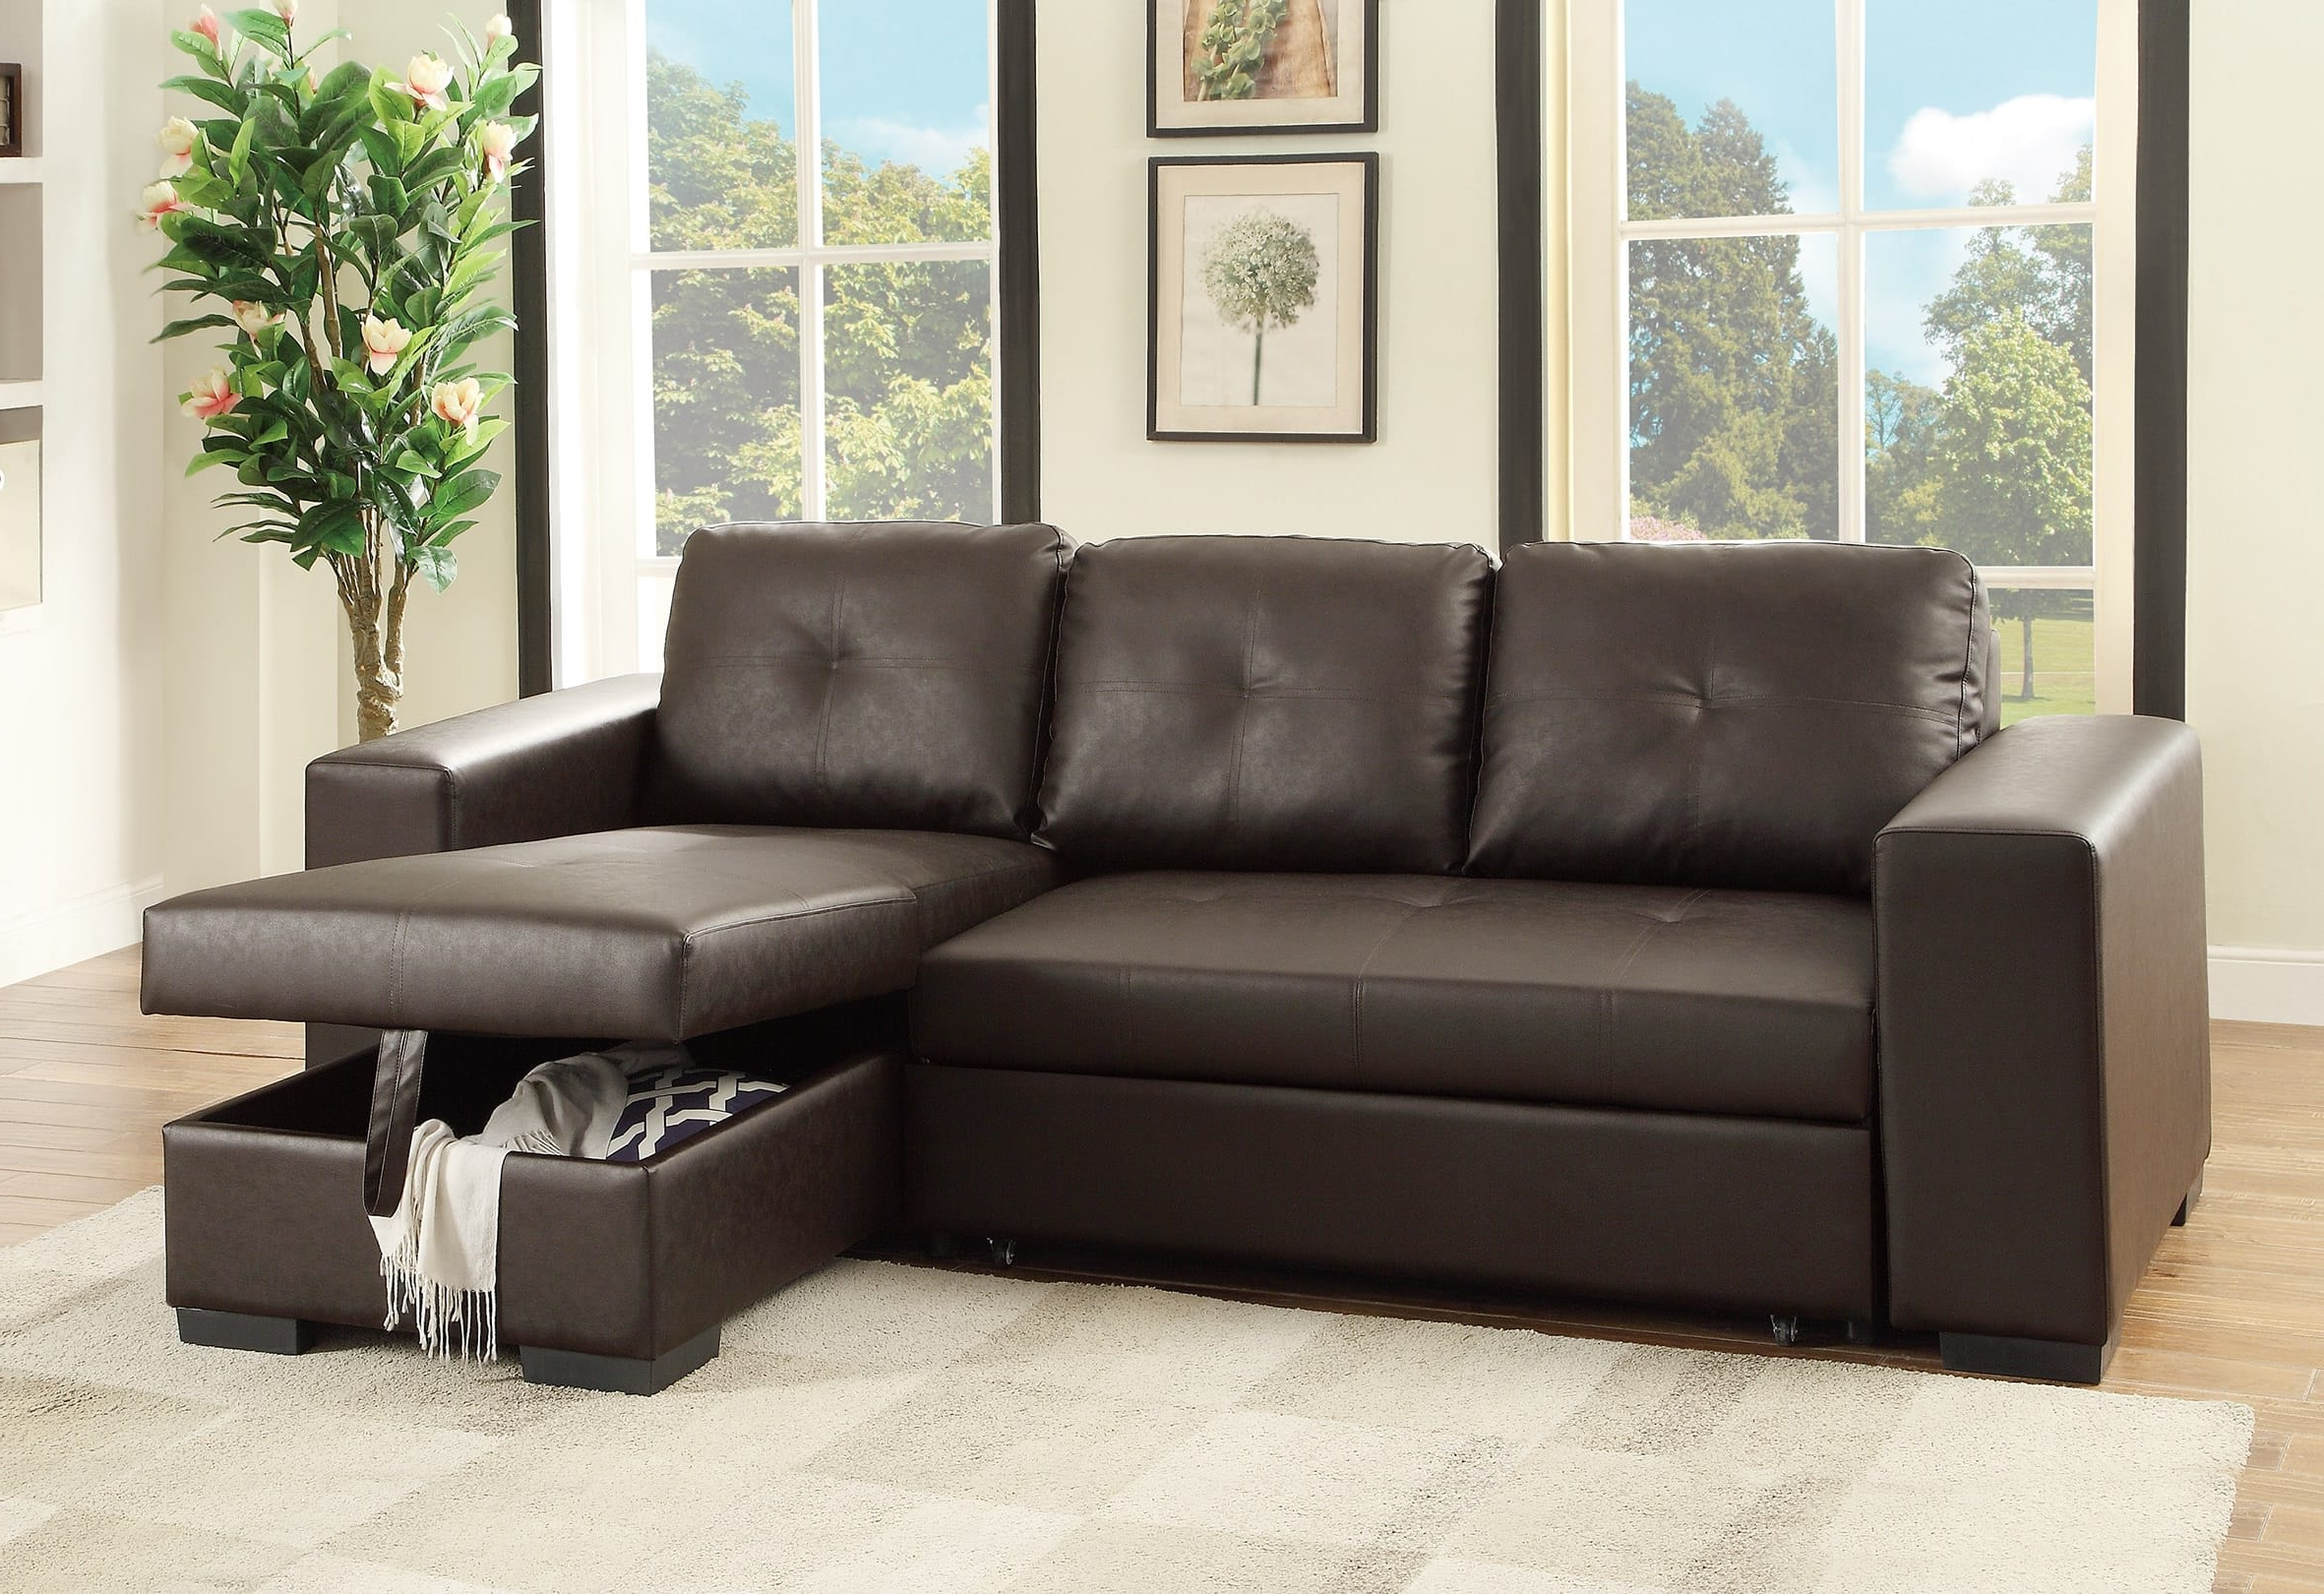 Palisades Reversible Small Space Sectional Sofas With Storage With Recent Flash Espresso Faux Leather Convertible Sectional Pull Out (View 25 of 25)